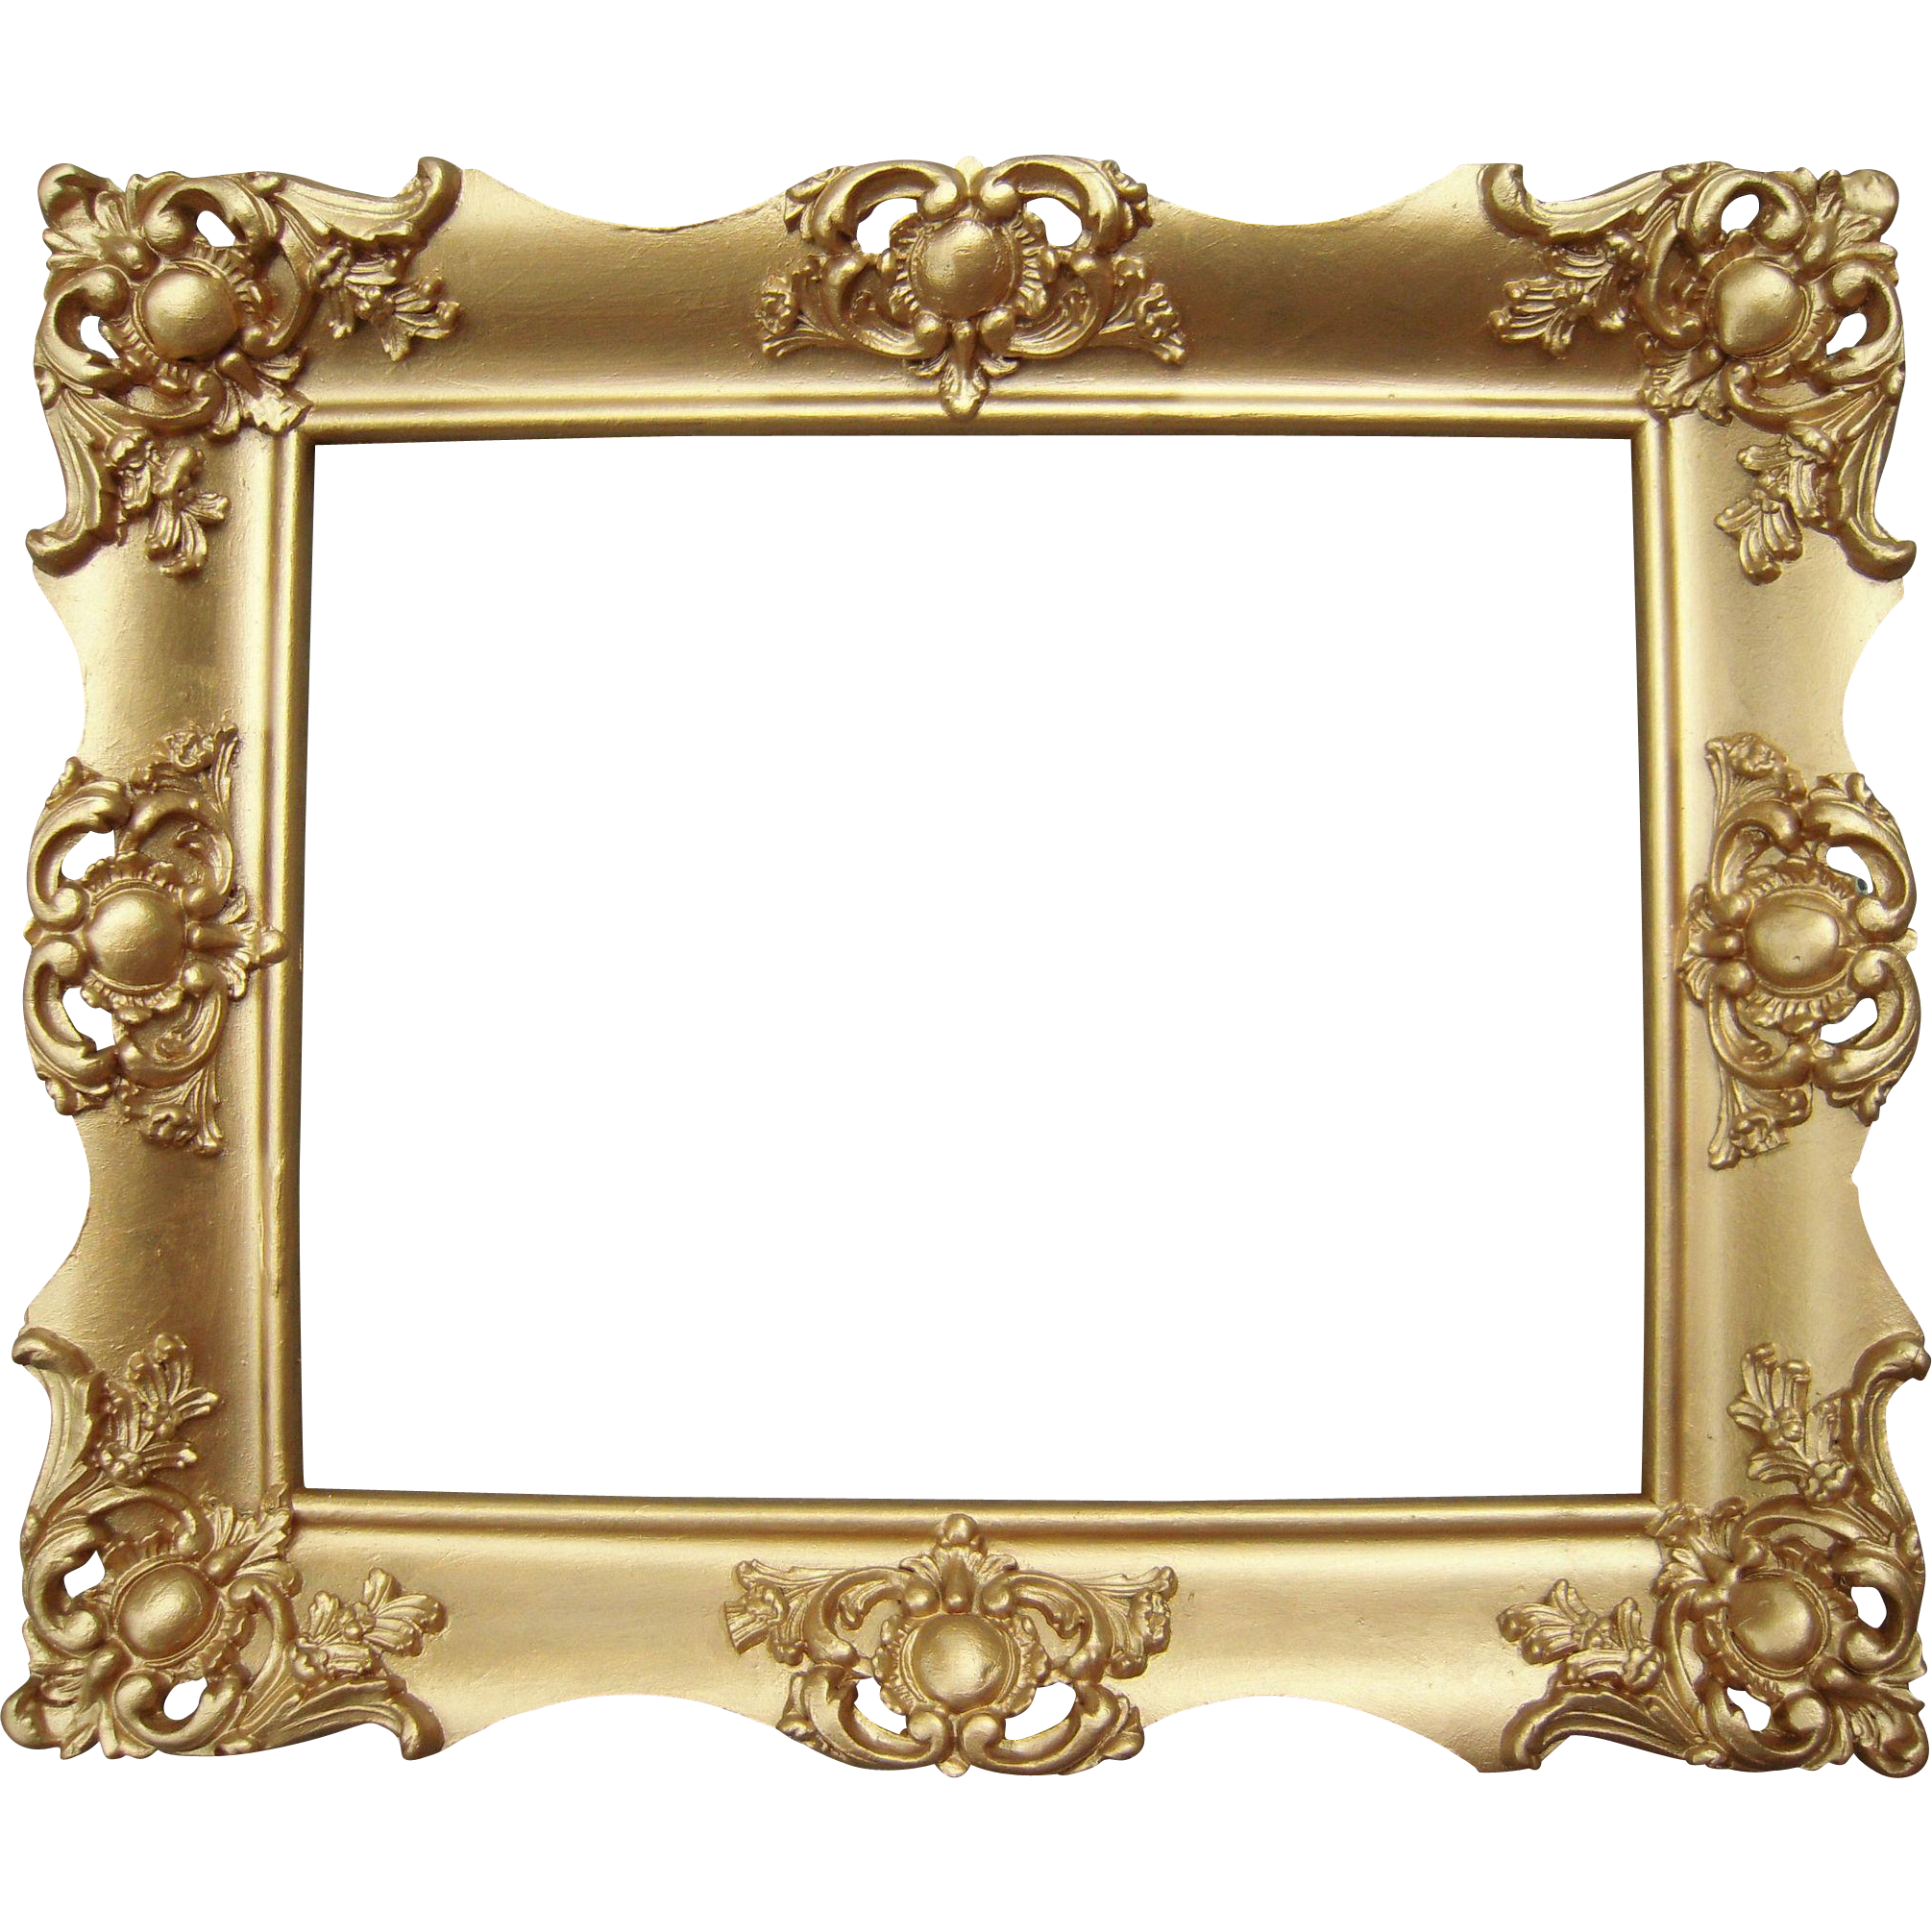 Starfish clipart ornate. Gold victorian picture frame